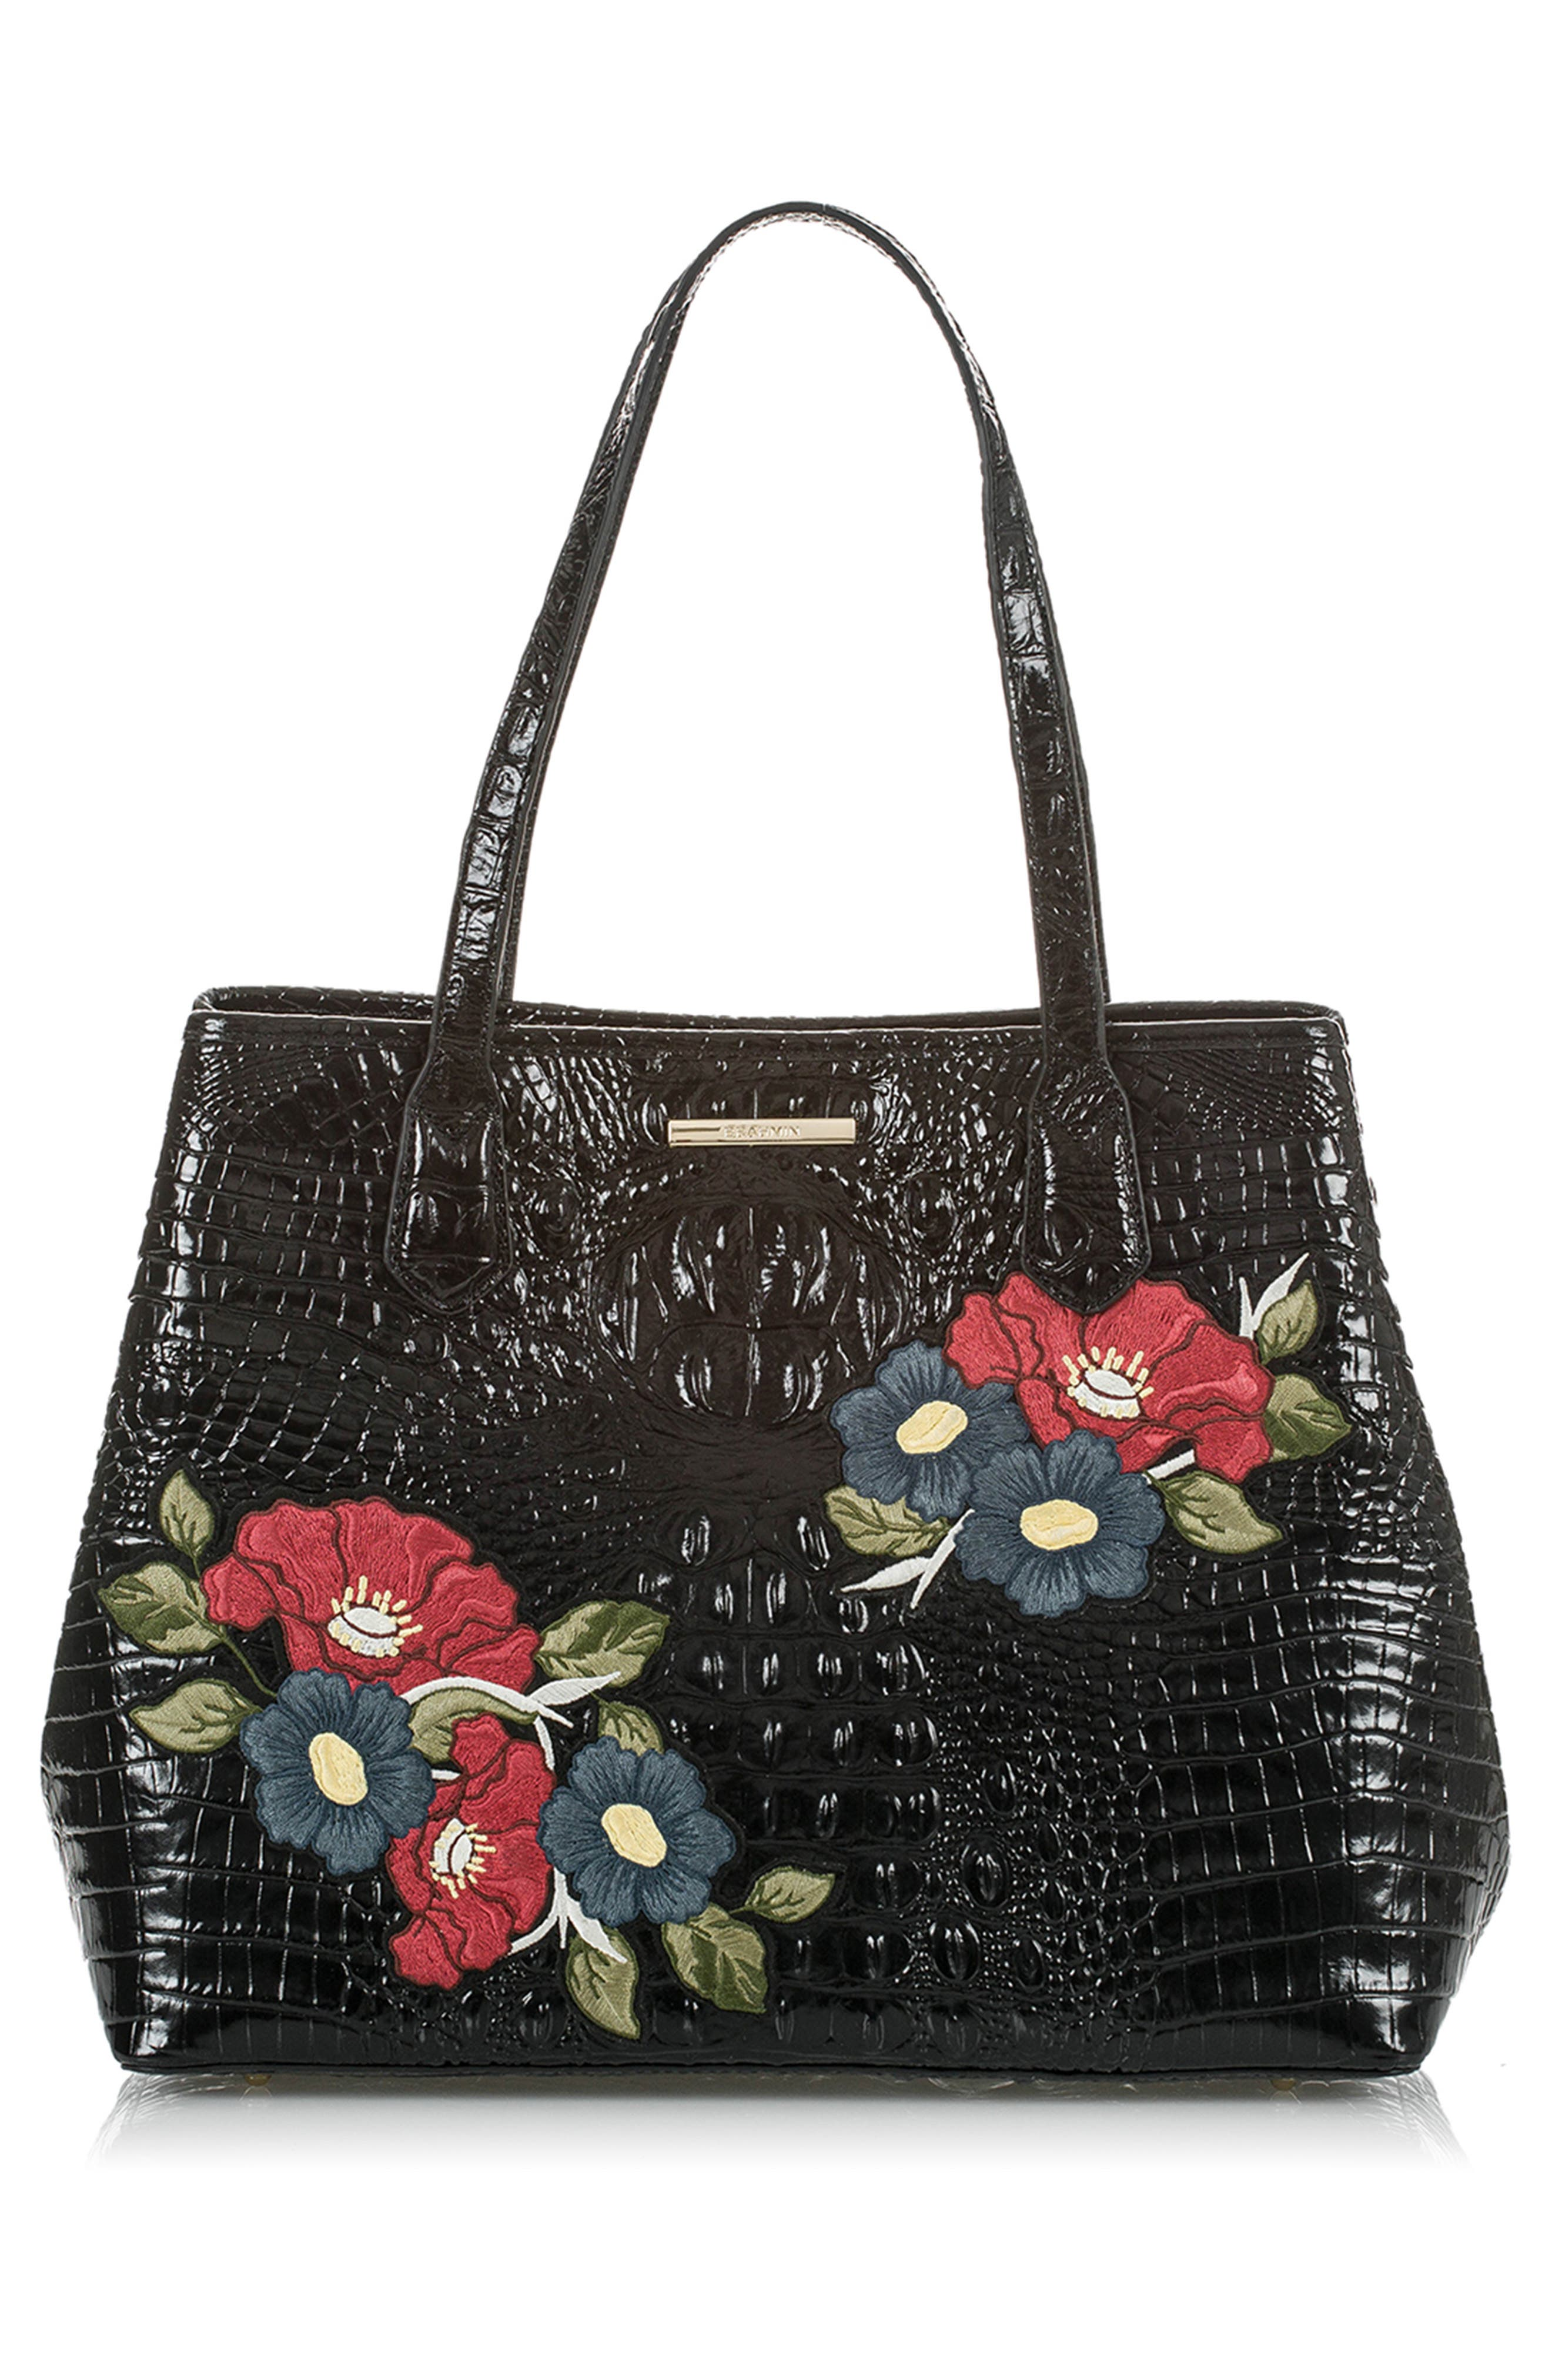 Medium Julian Embroidered Leather Tote,                             Alternate thumbnail 5, color,                             BLACK